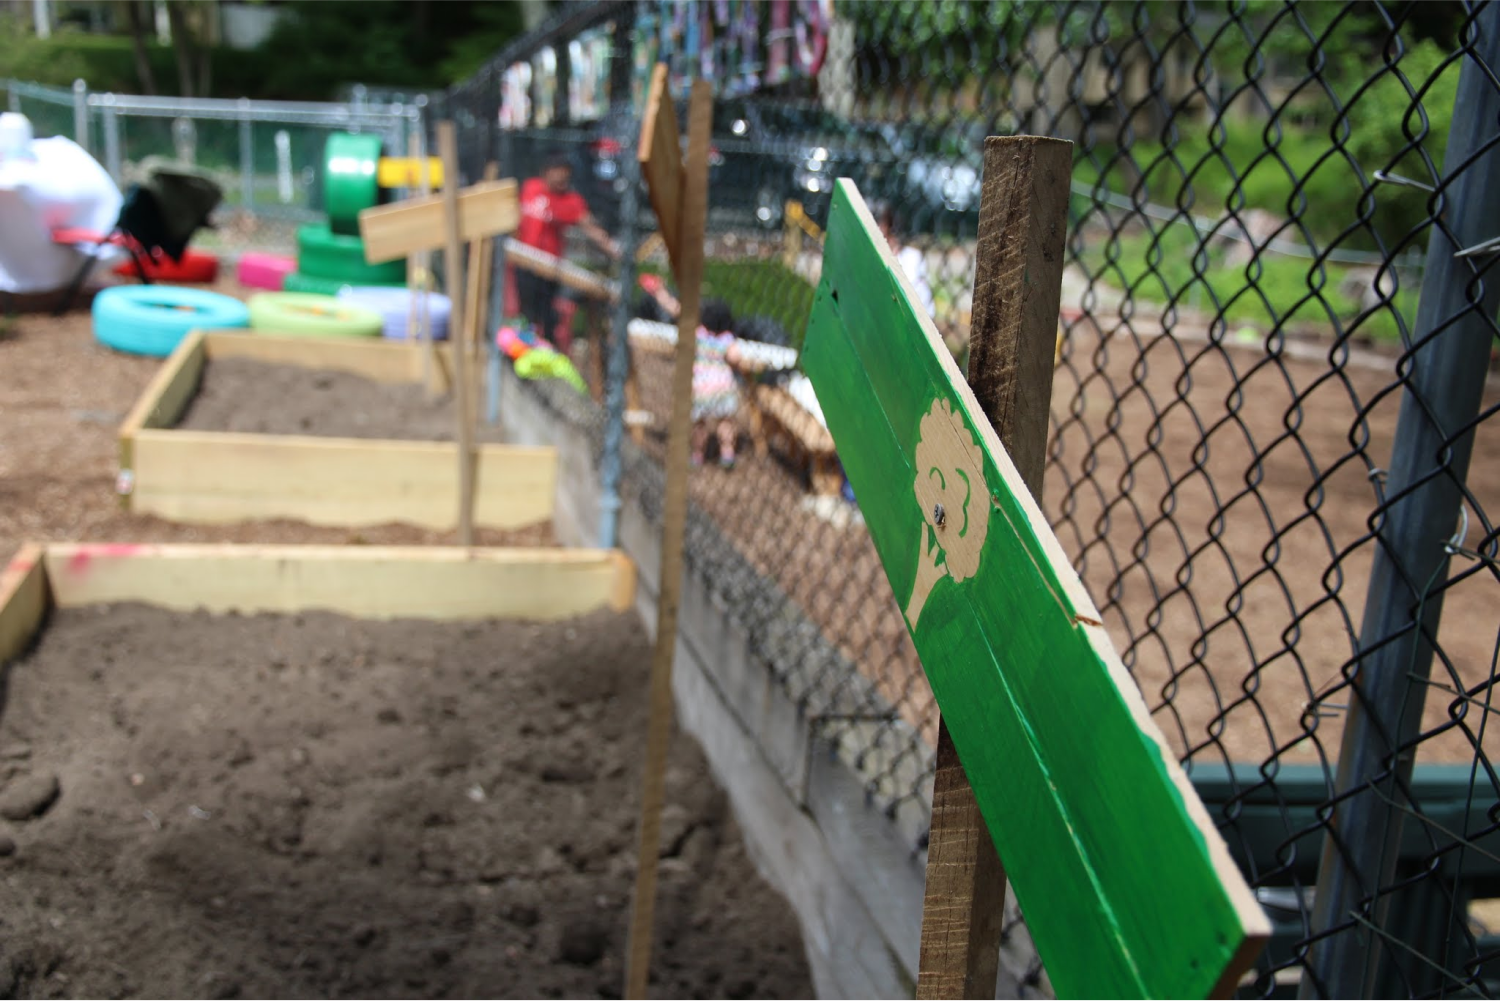 The garden section of the natural playground at StoryHeights Montessori Norfolk Location.